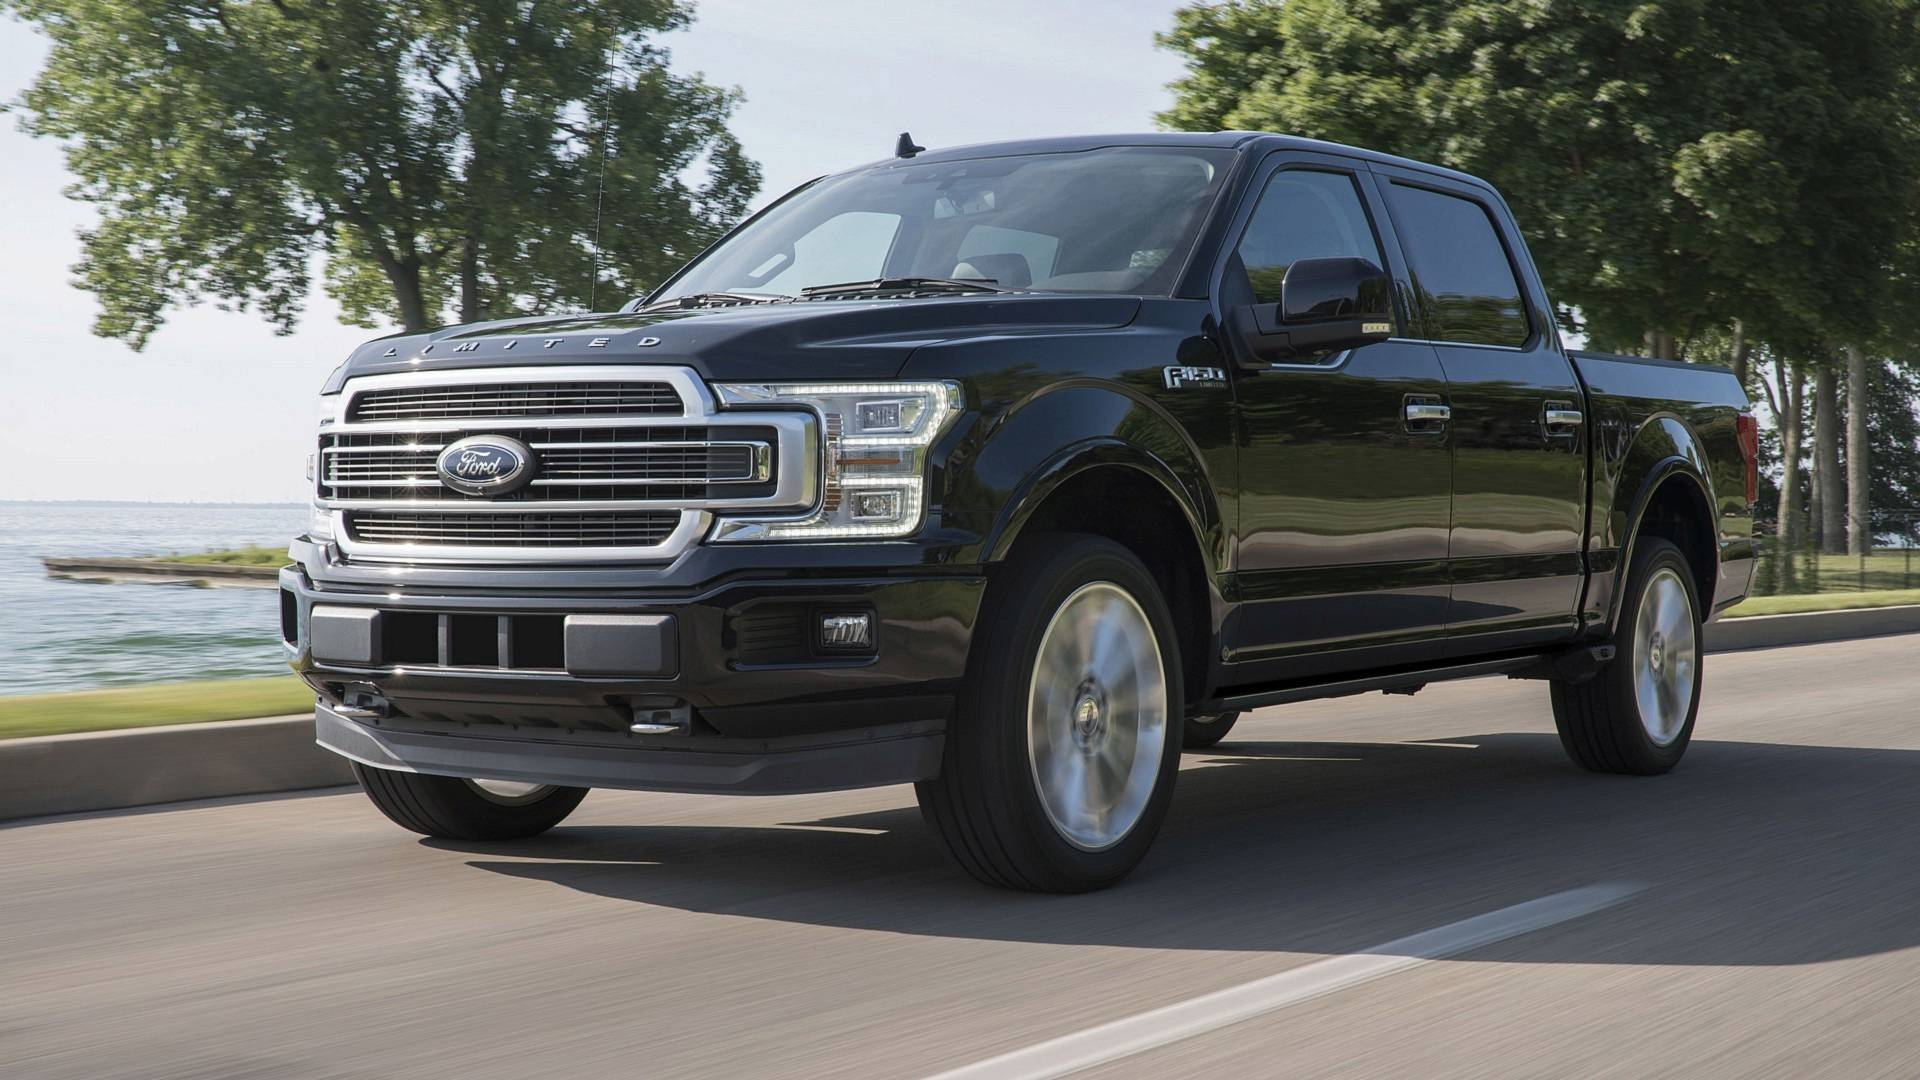 2019 Ford F-150 Limited Gains 450-hp EcoBoost V6 Engine - autoevolution